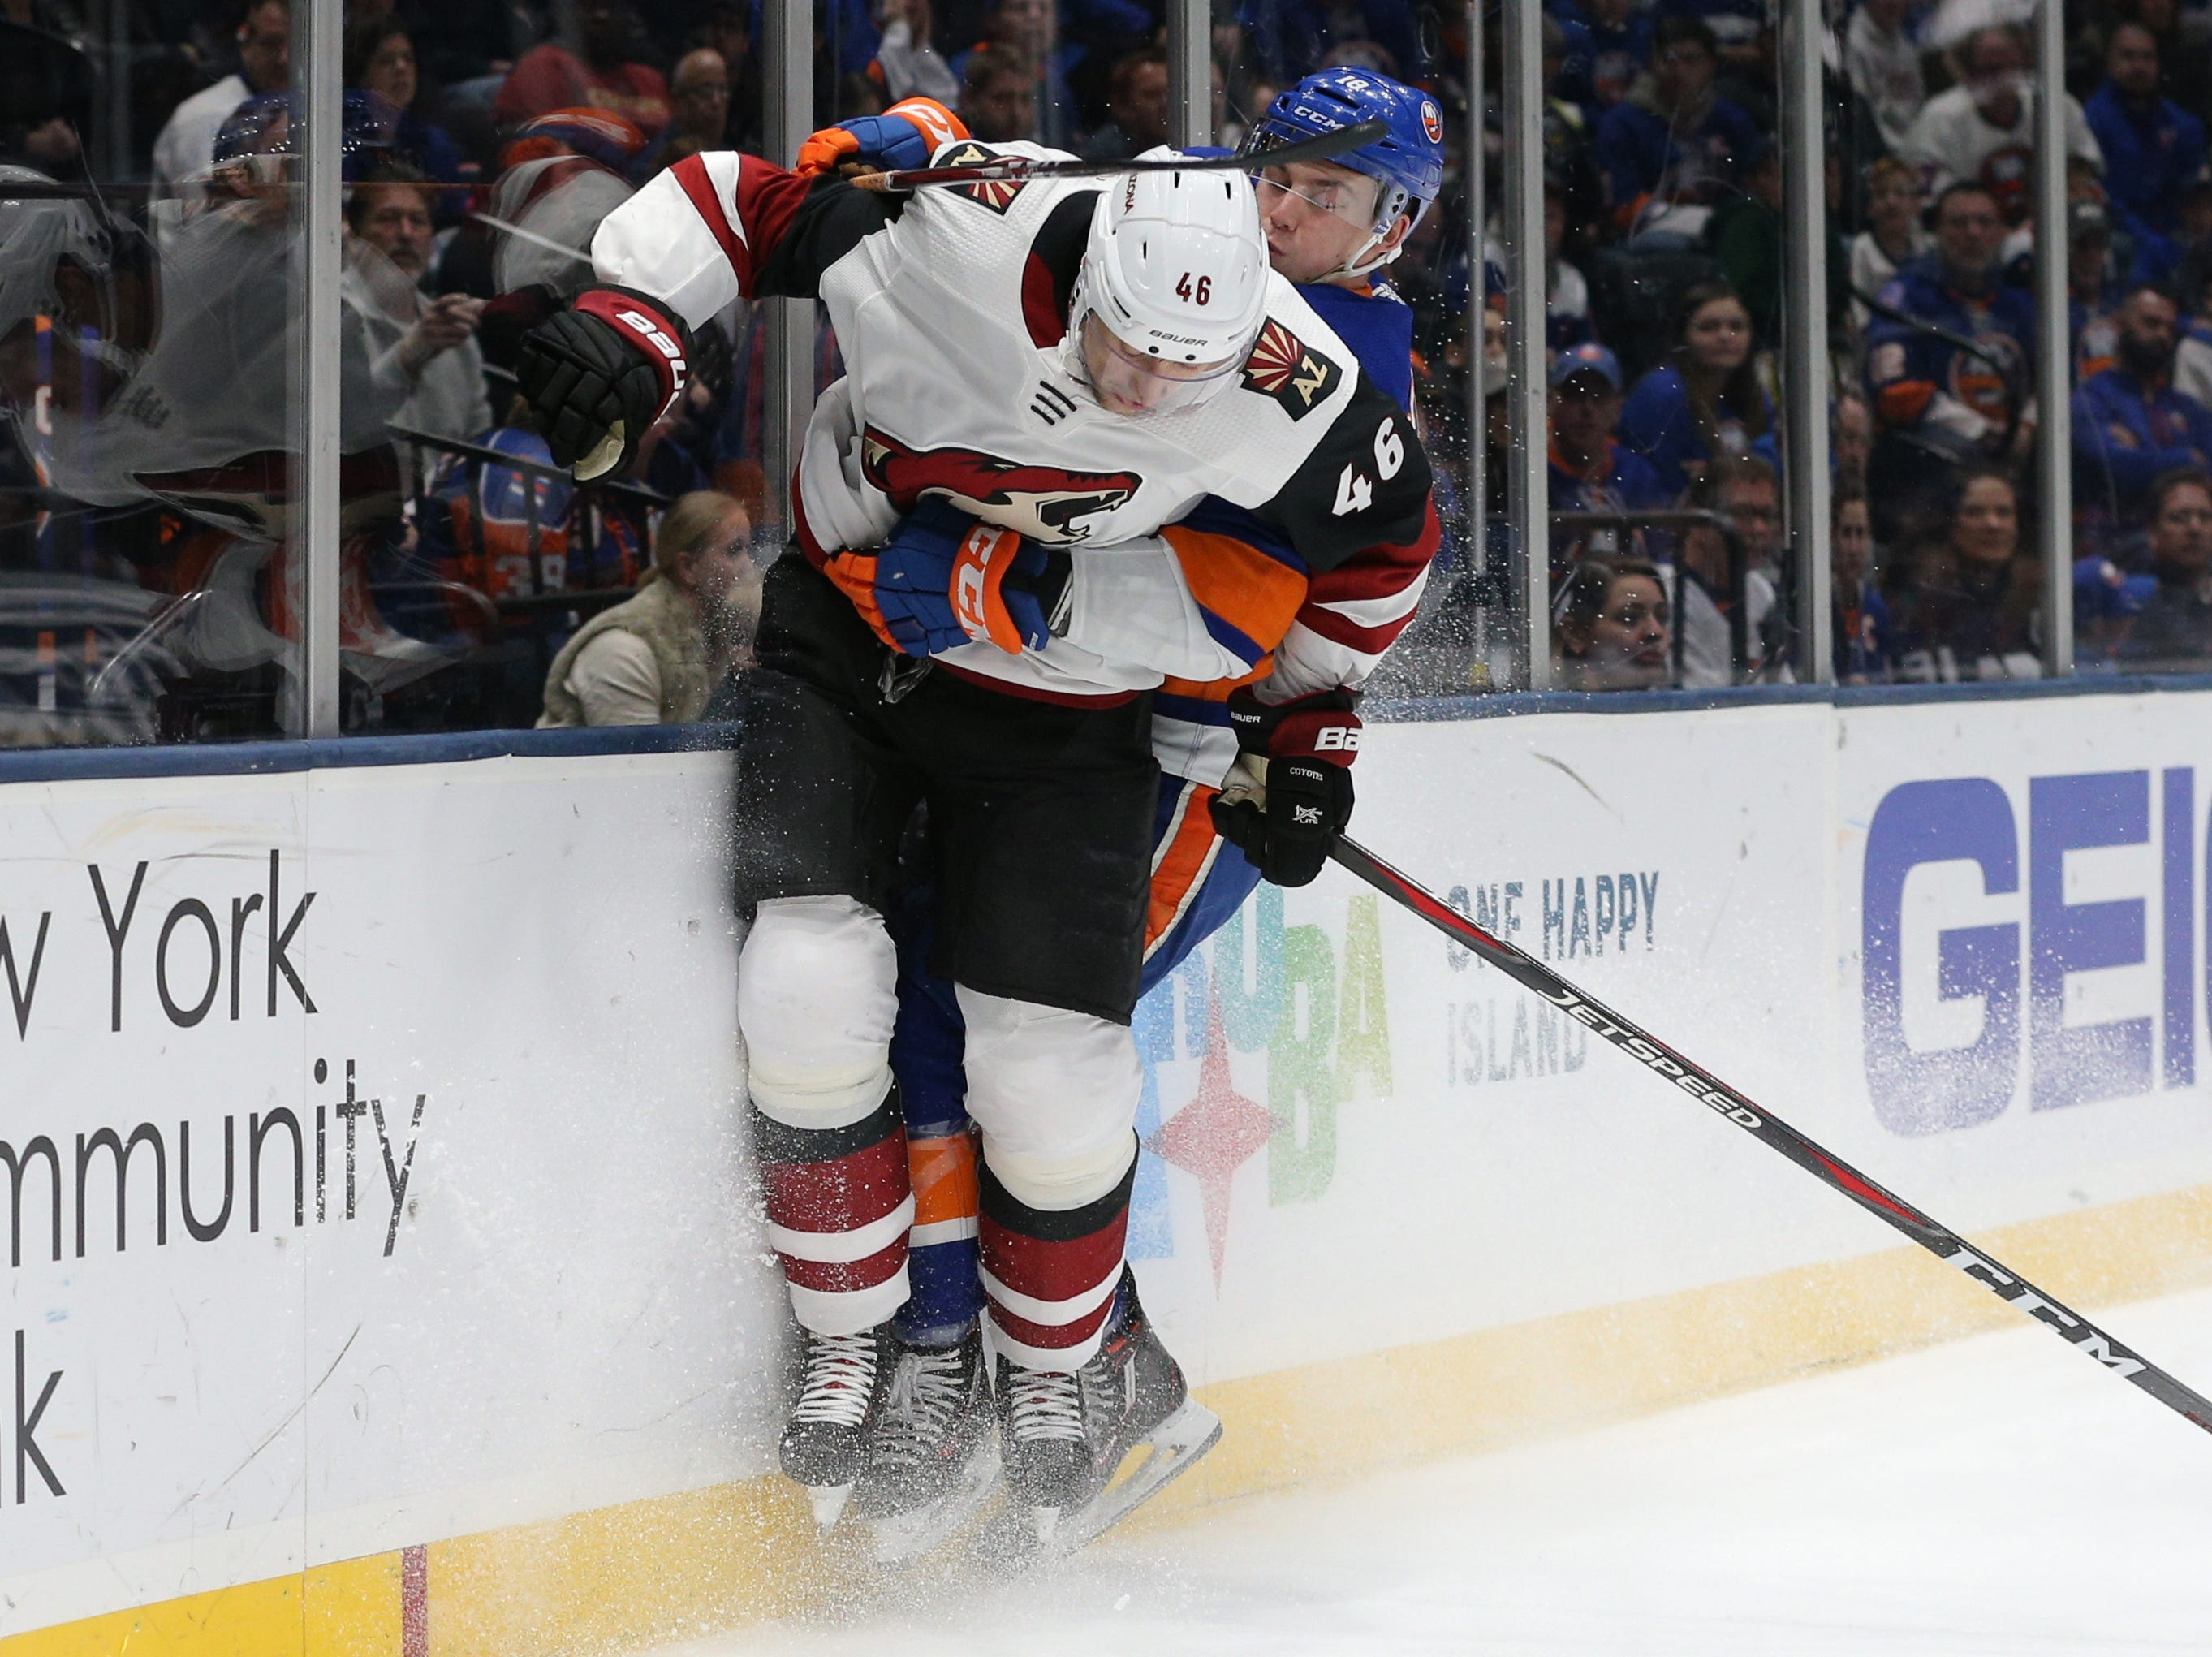 Coyotes defenseman Ilya Lyubushkin (46) and Islanders left wing Anthony Beauvillier (18) hit the boards during the second period of a game at Nassau Veterans Memorial Coliseum.